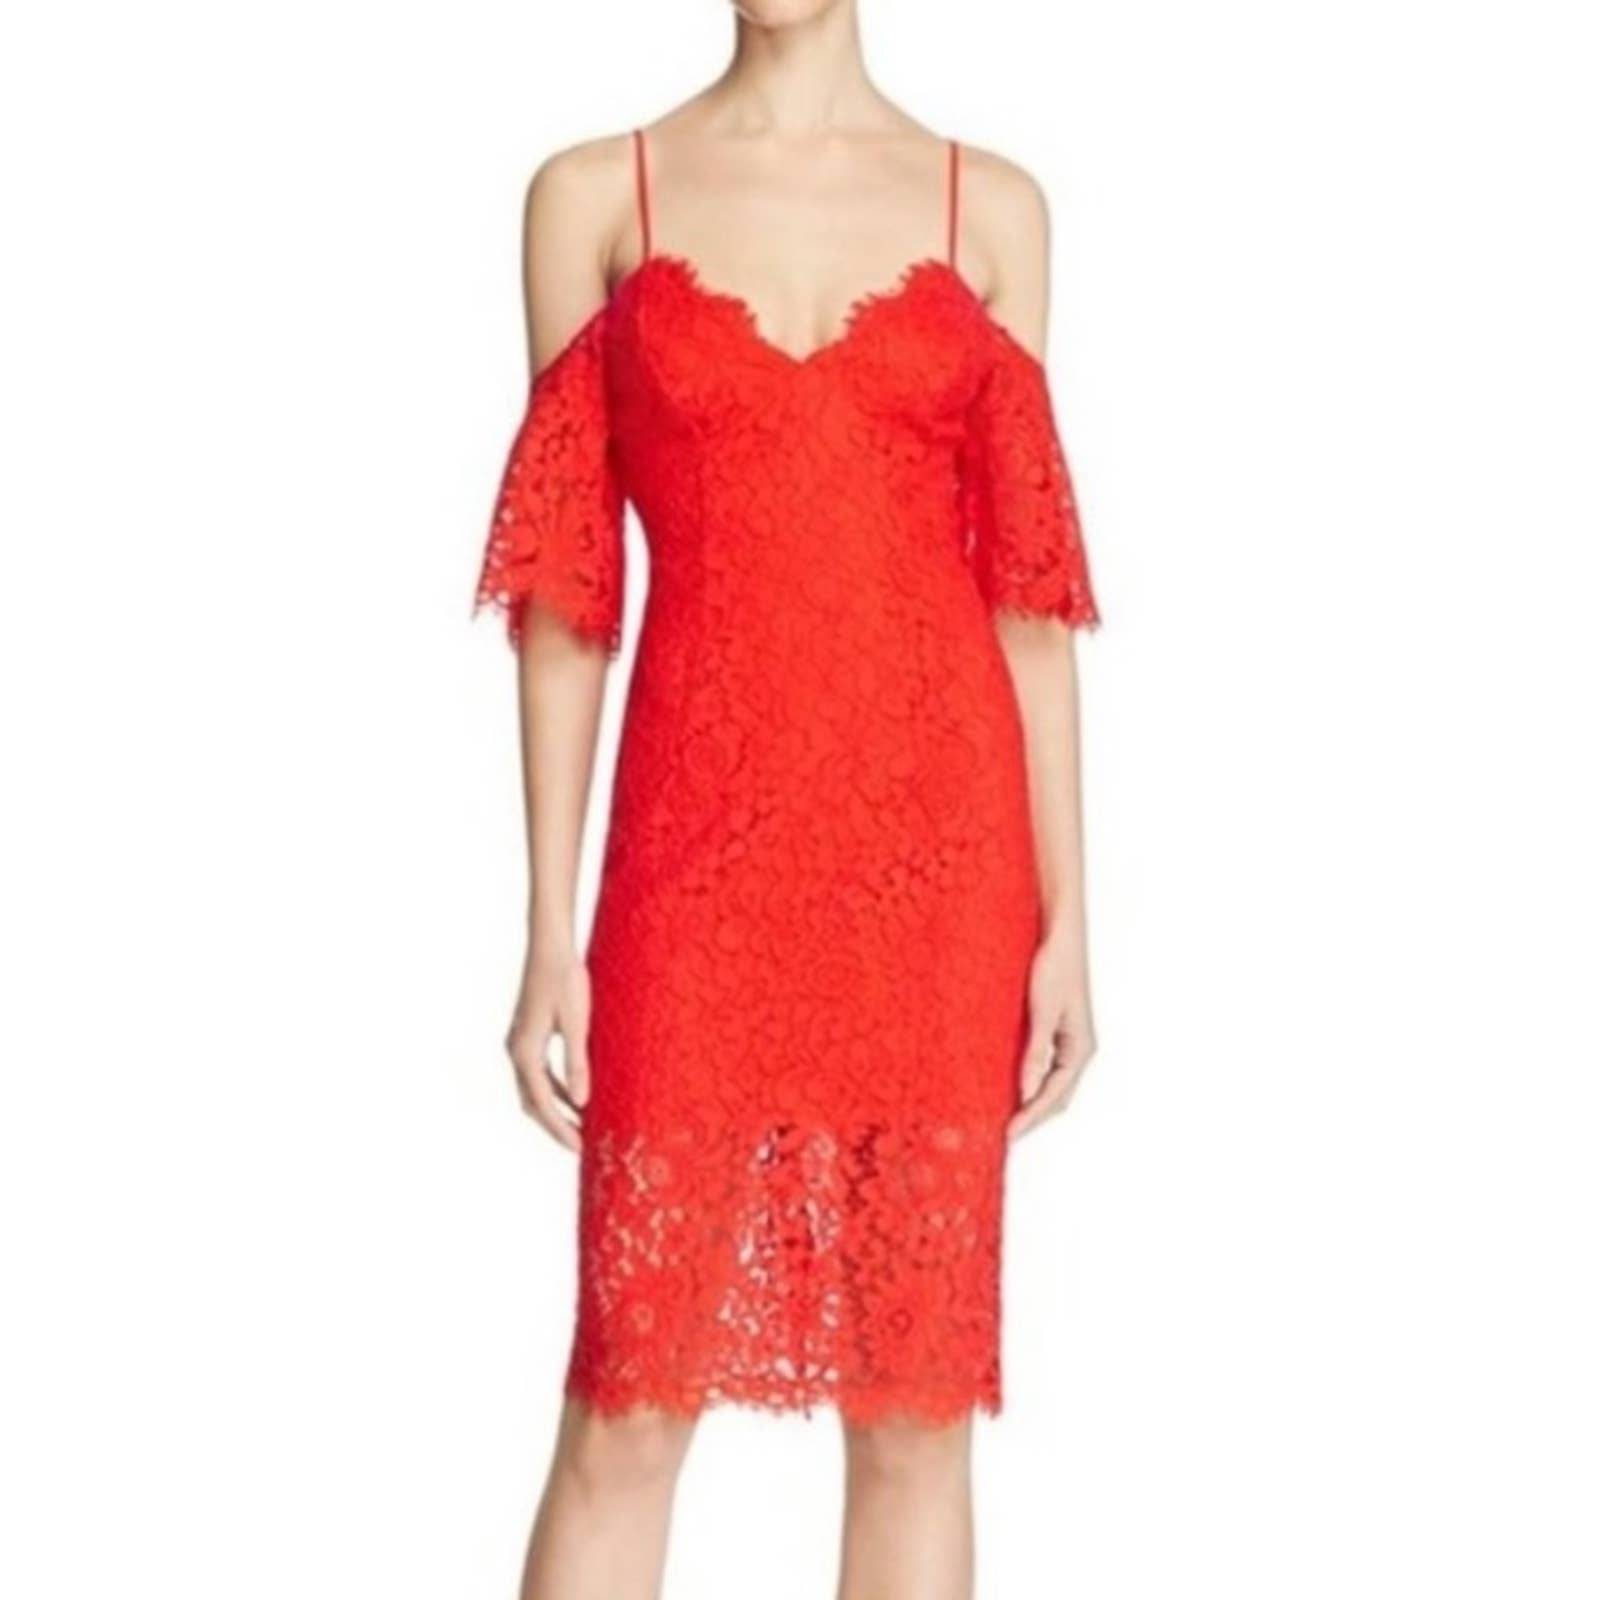 NWT Bardot Karlie Lace Dress in Red